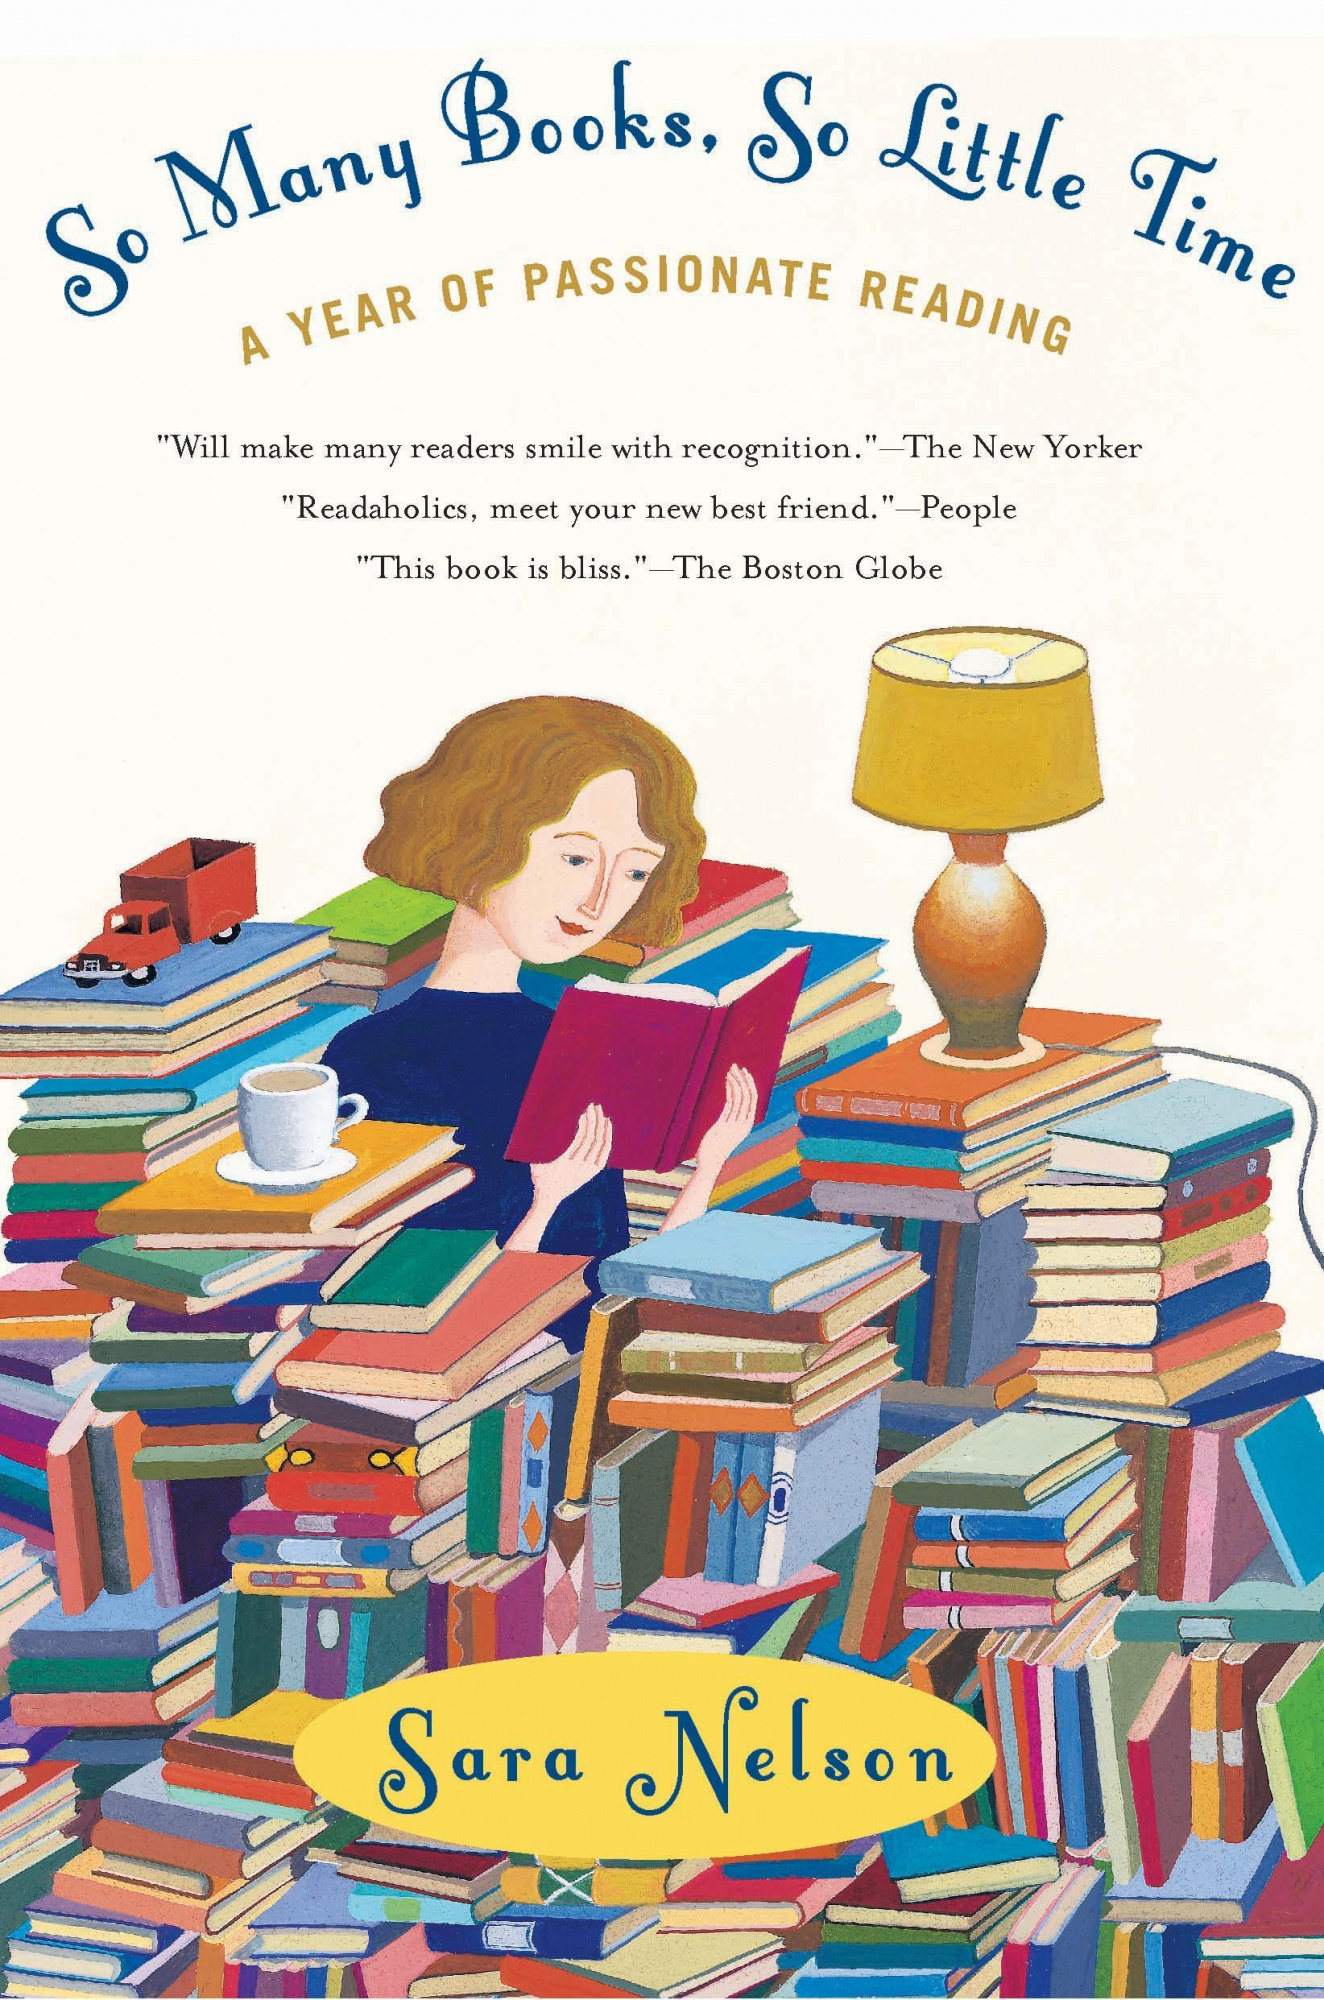 So Many Books, So Little Time by Sara Nelson, ISBN: 9780425198193